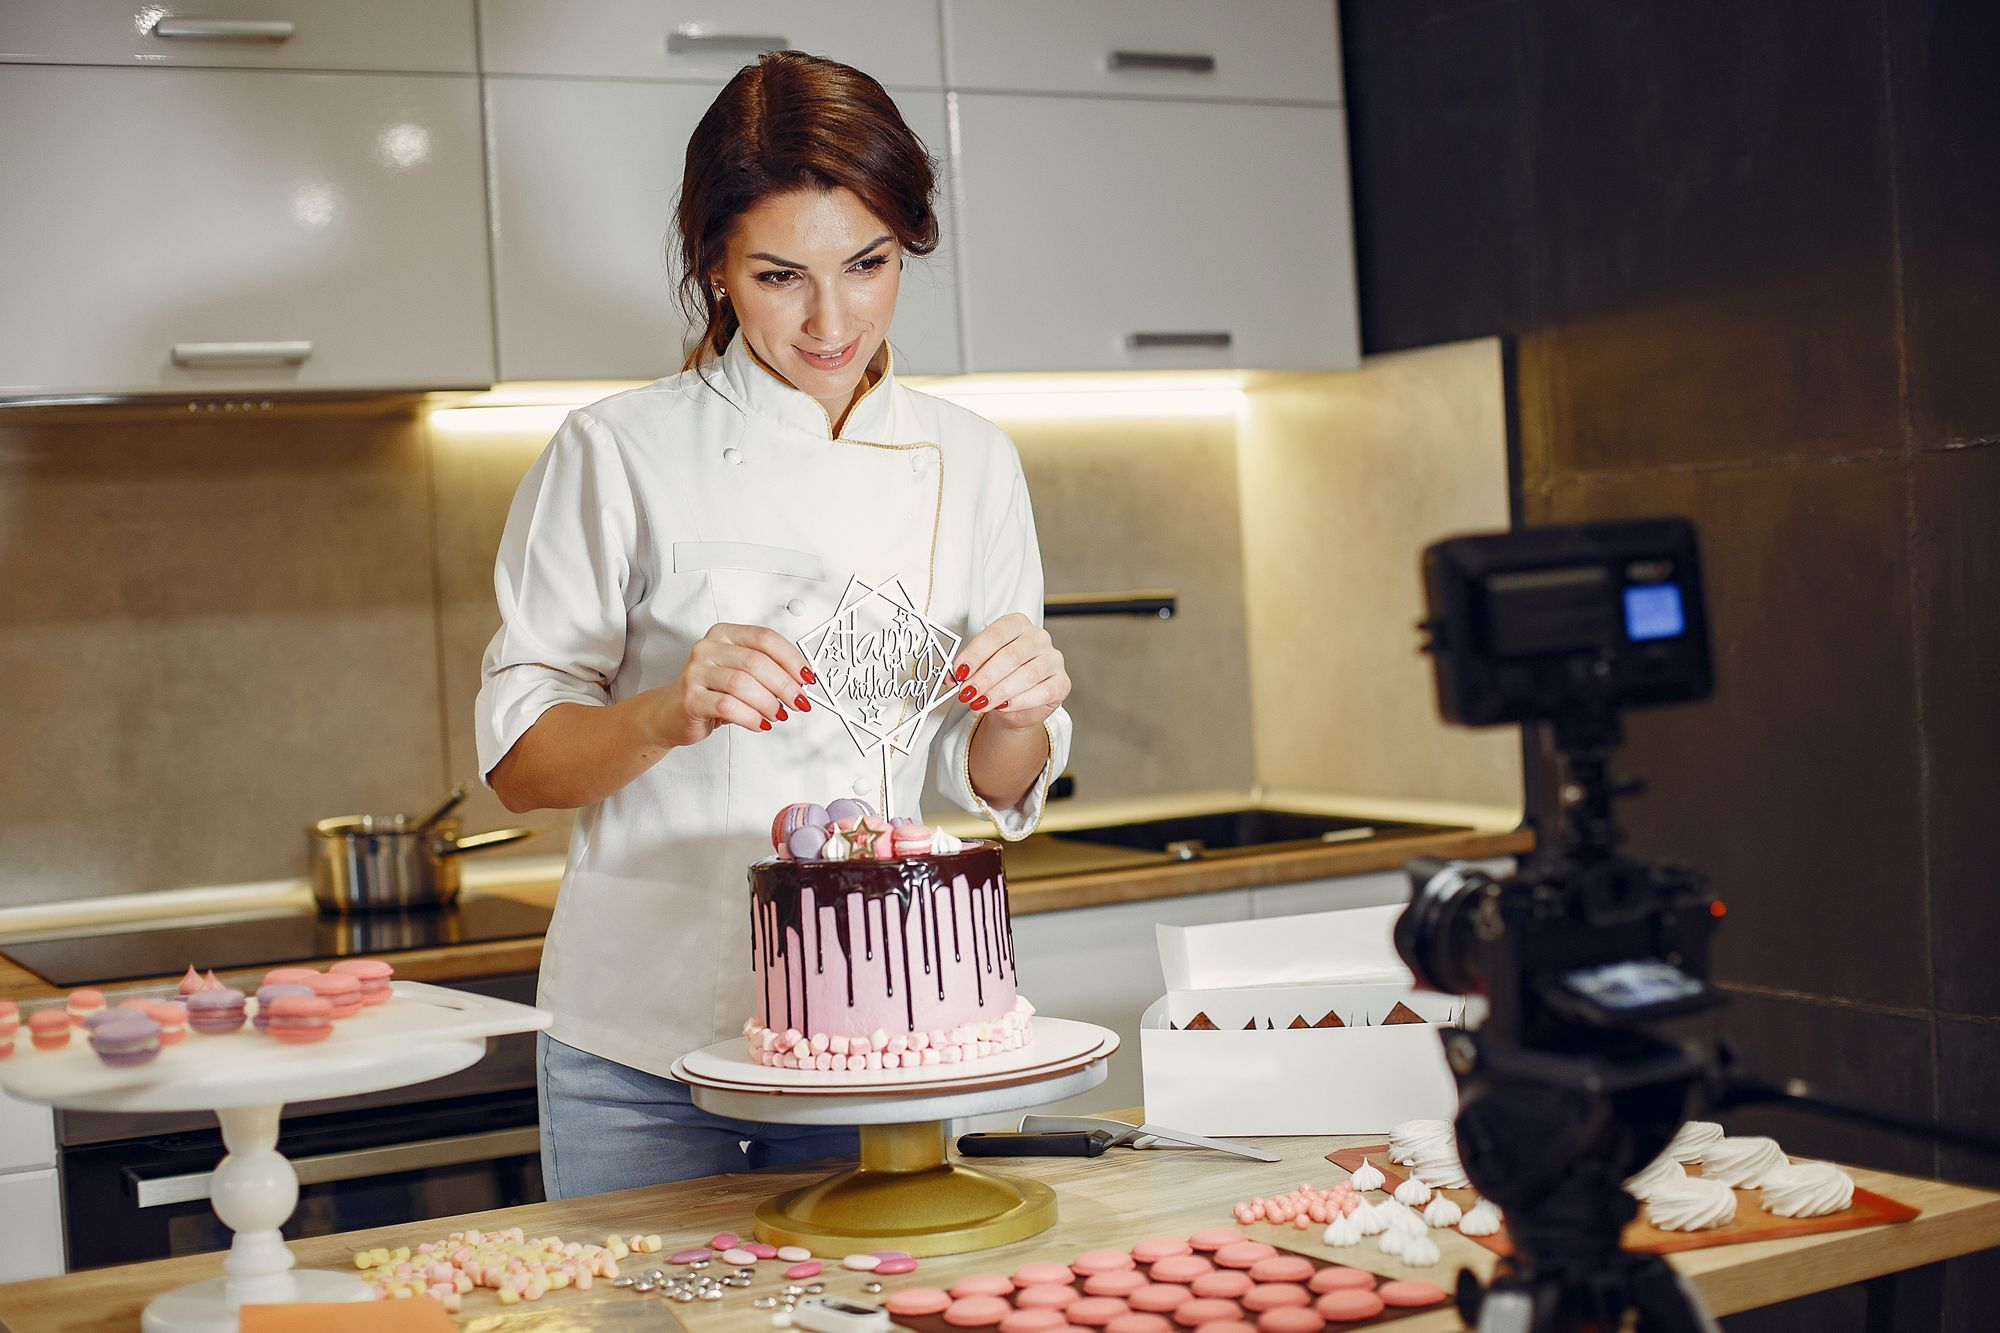 """Get your """"how-to bake the perfect birthday cake"""" on live stream"""